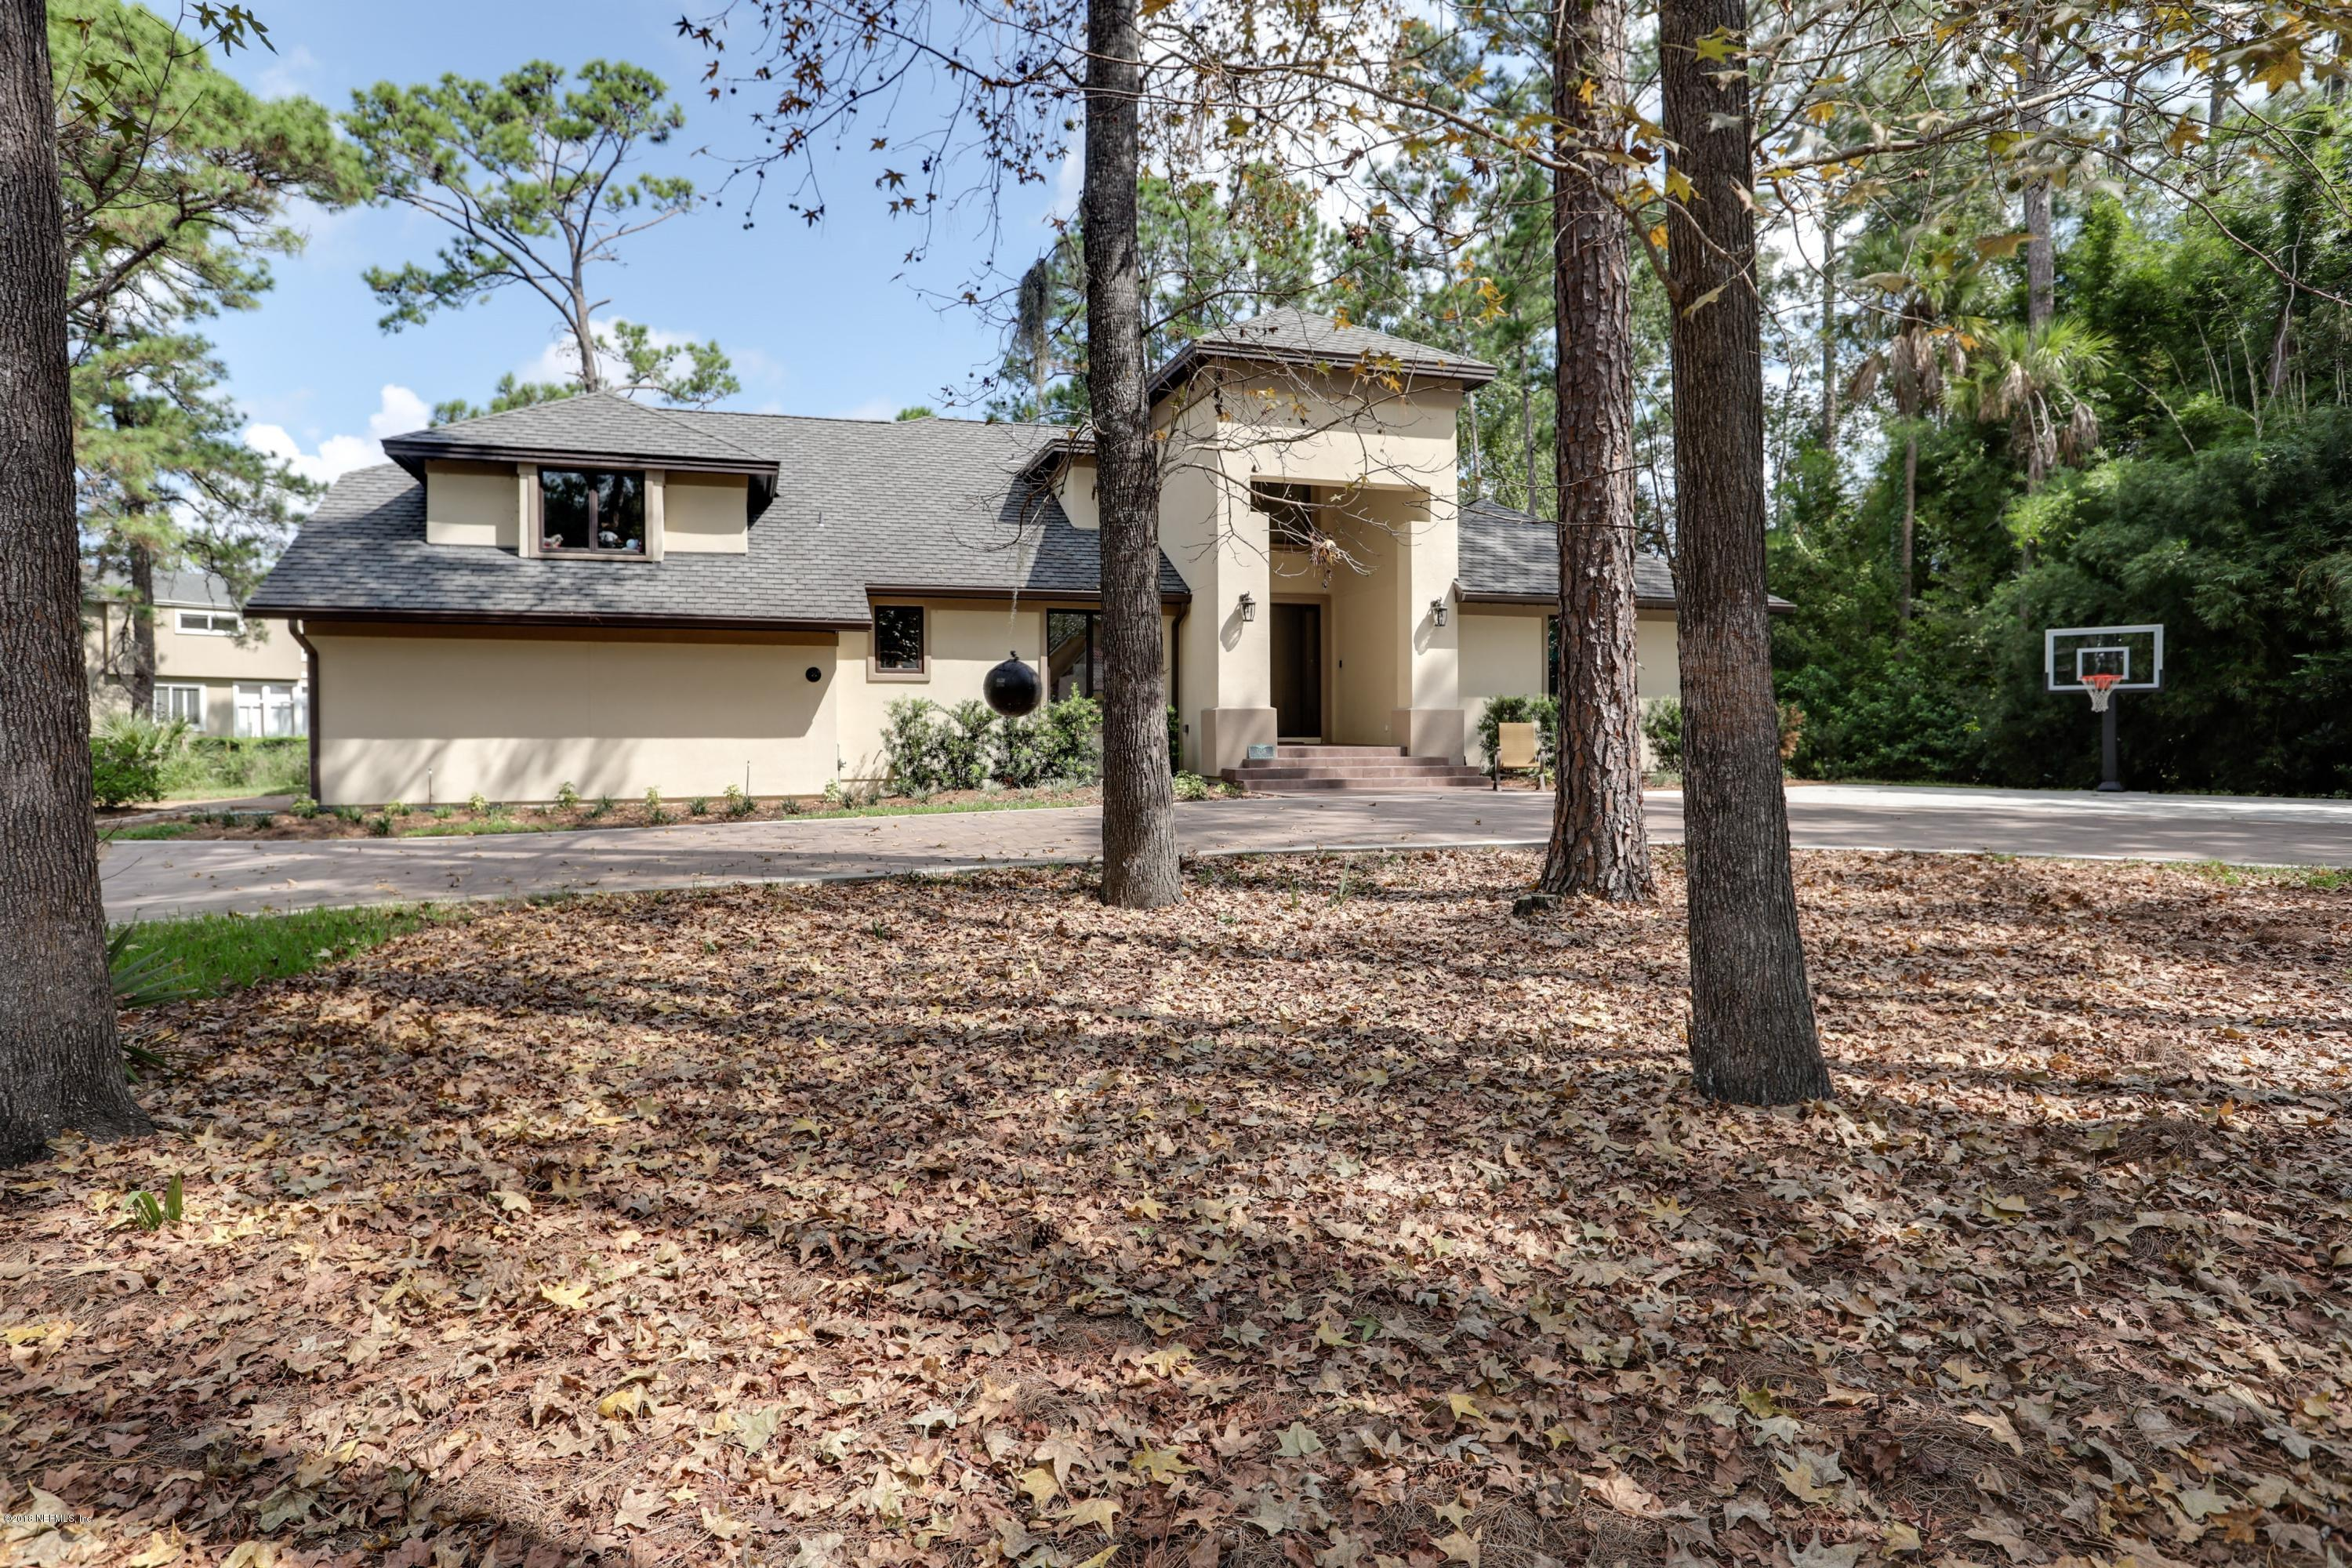 12516 OLD STILL, PONTE VEDRA BEACH, FLORIDA 32082, 4 Bedrooms Bedrooms, ,4 BathroomsBathrooms,Residential - single family,For sale,OLD STILL,963534